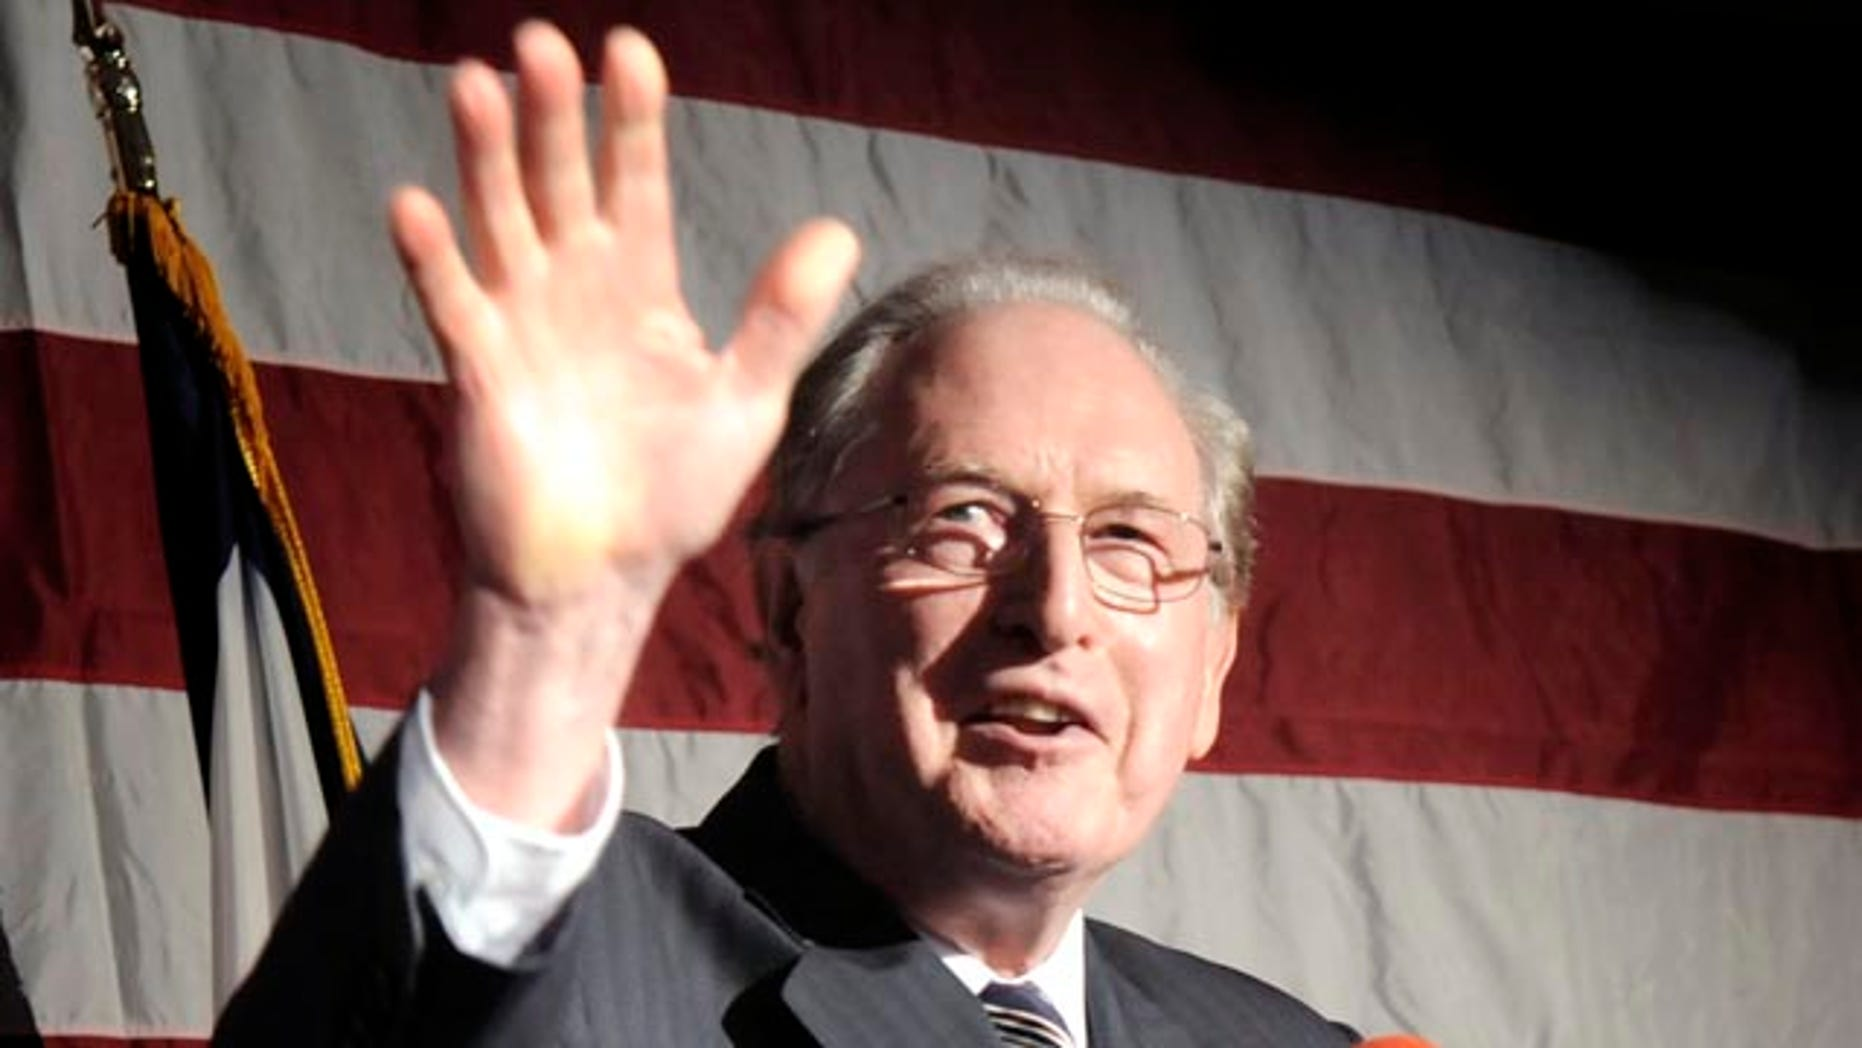 Sen. Jay Rockefeller shown here Nov. 2 said Nov. 17 that he wishes the FCC would shut down Fox News and MSNBC.